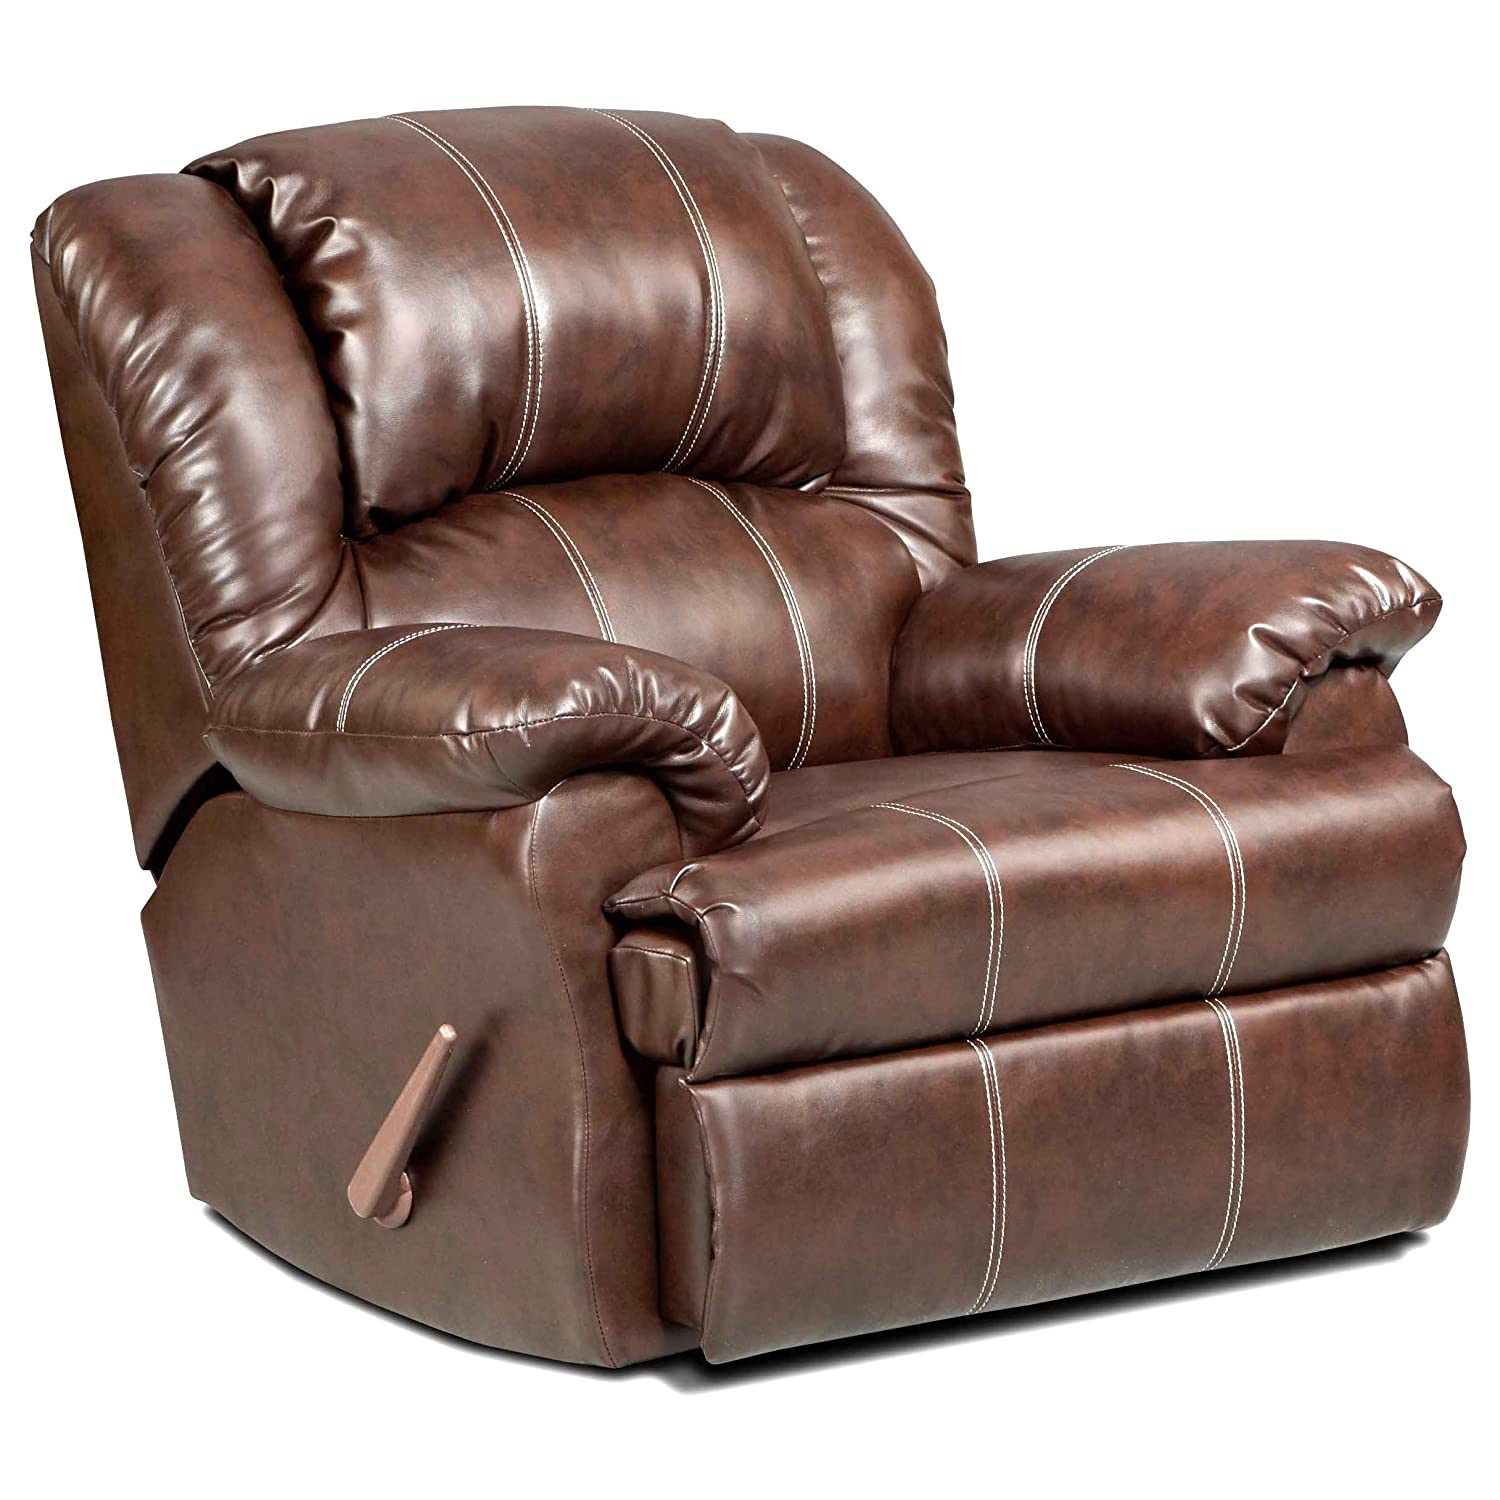 Roundhill Furniture Brandan Bonded Leather Dual Rocker Recliner Chair